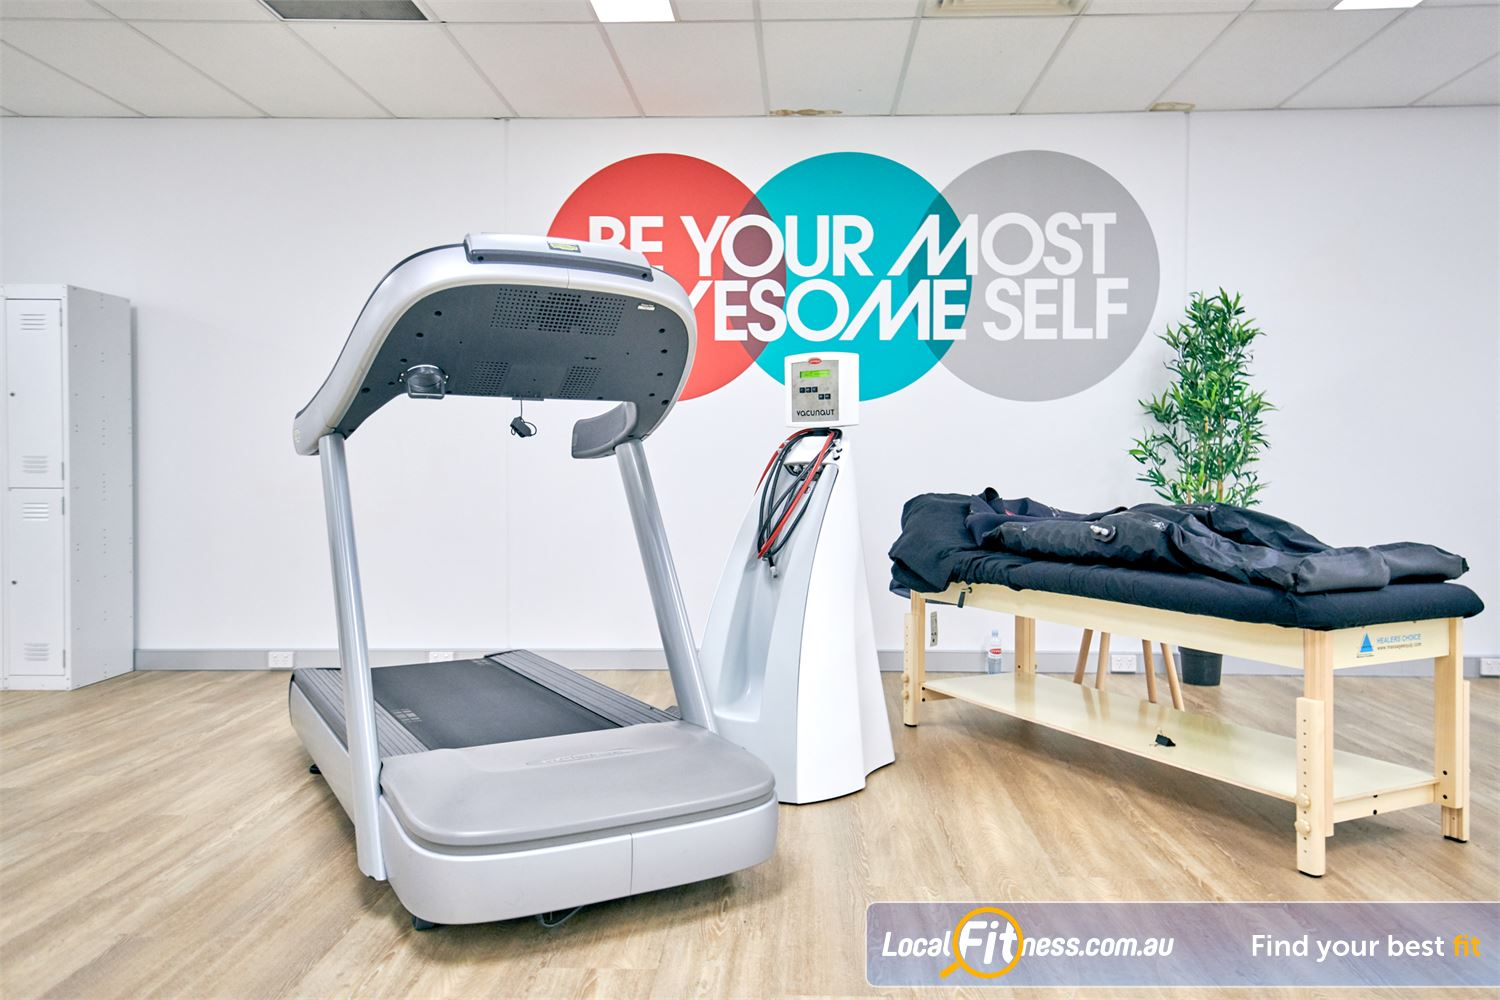 HYPOXI Weight Loss Jindalee HYPOXI Jindalee is great for men looking to lose those love handles.